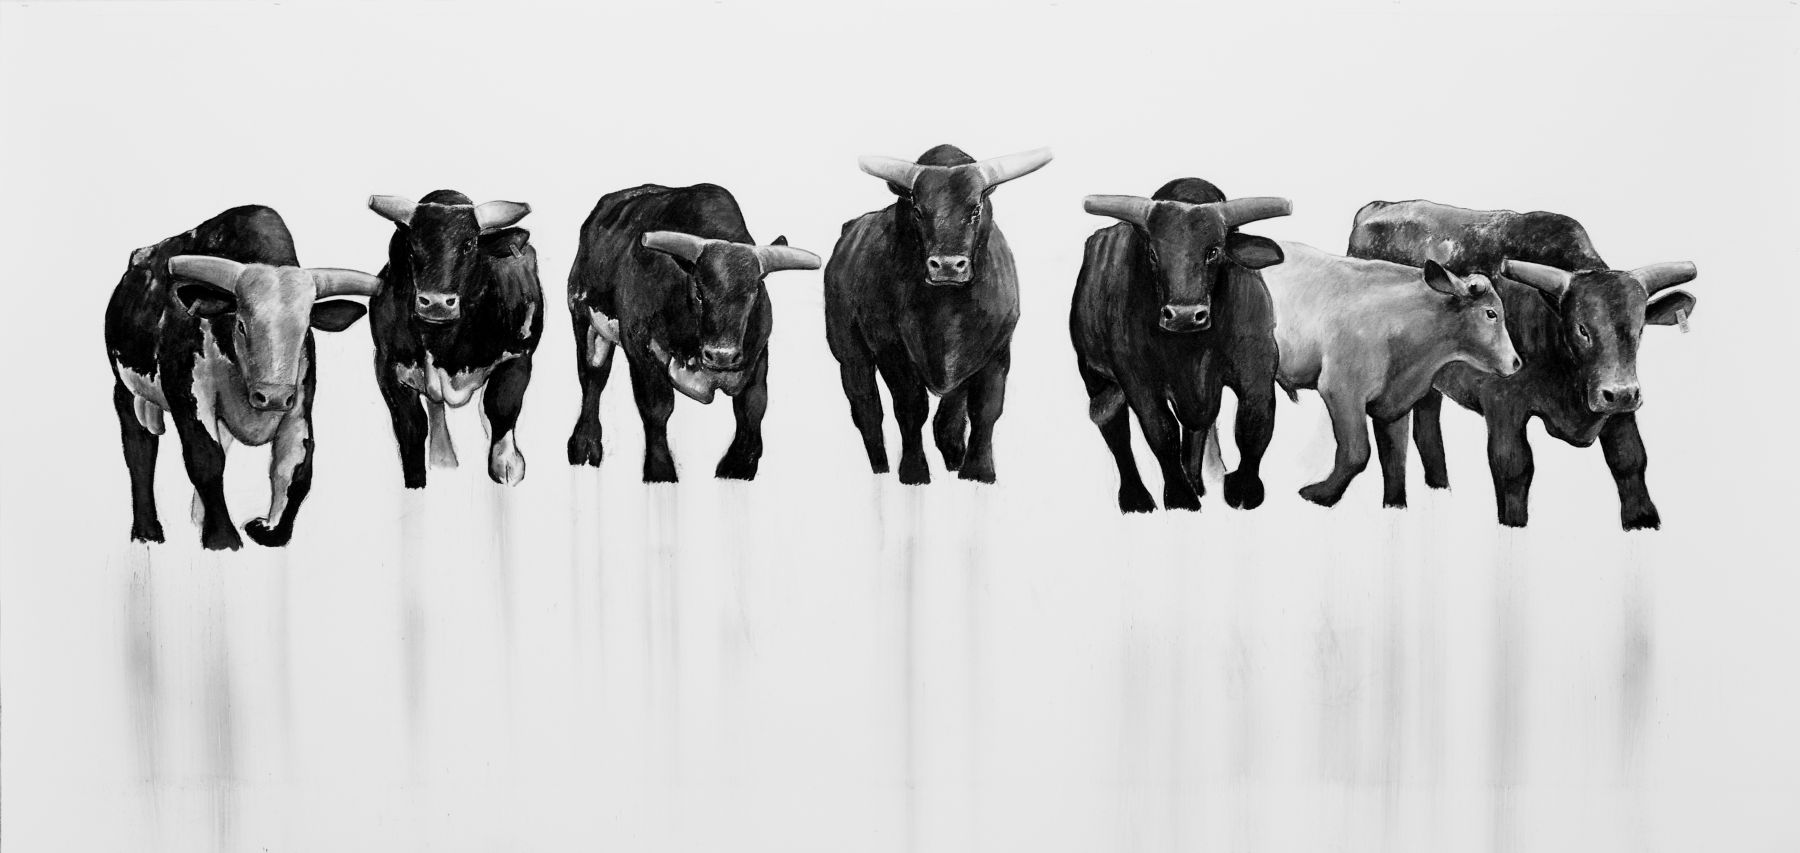 William Beckman, The Bull Series, #9 (SOLD), 2011-12, charcoal on paper, 59 x 123 inches